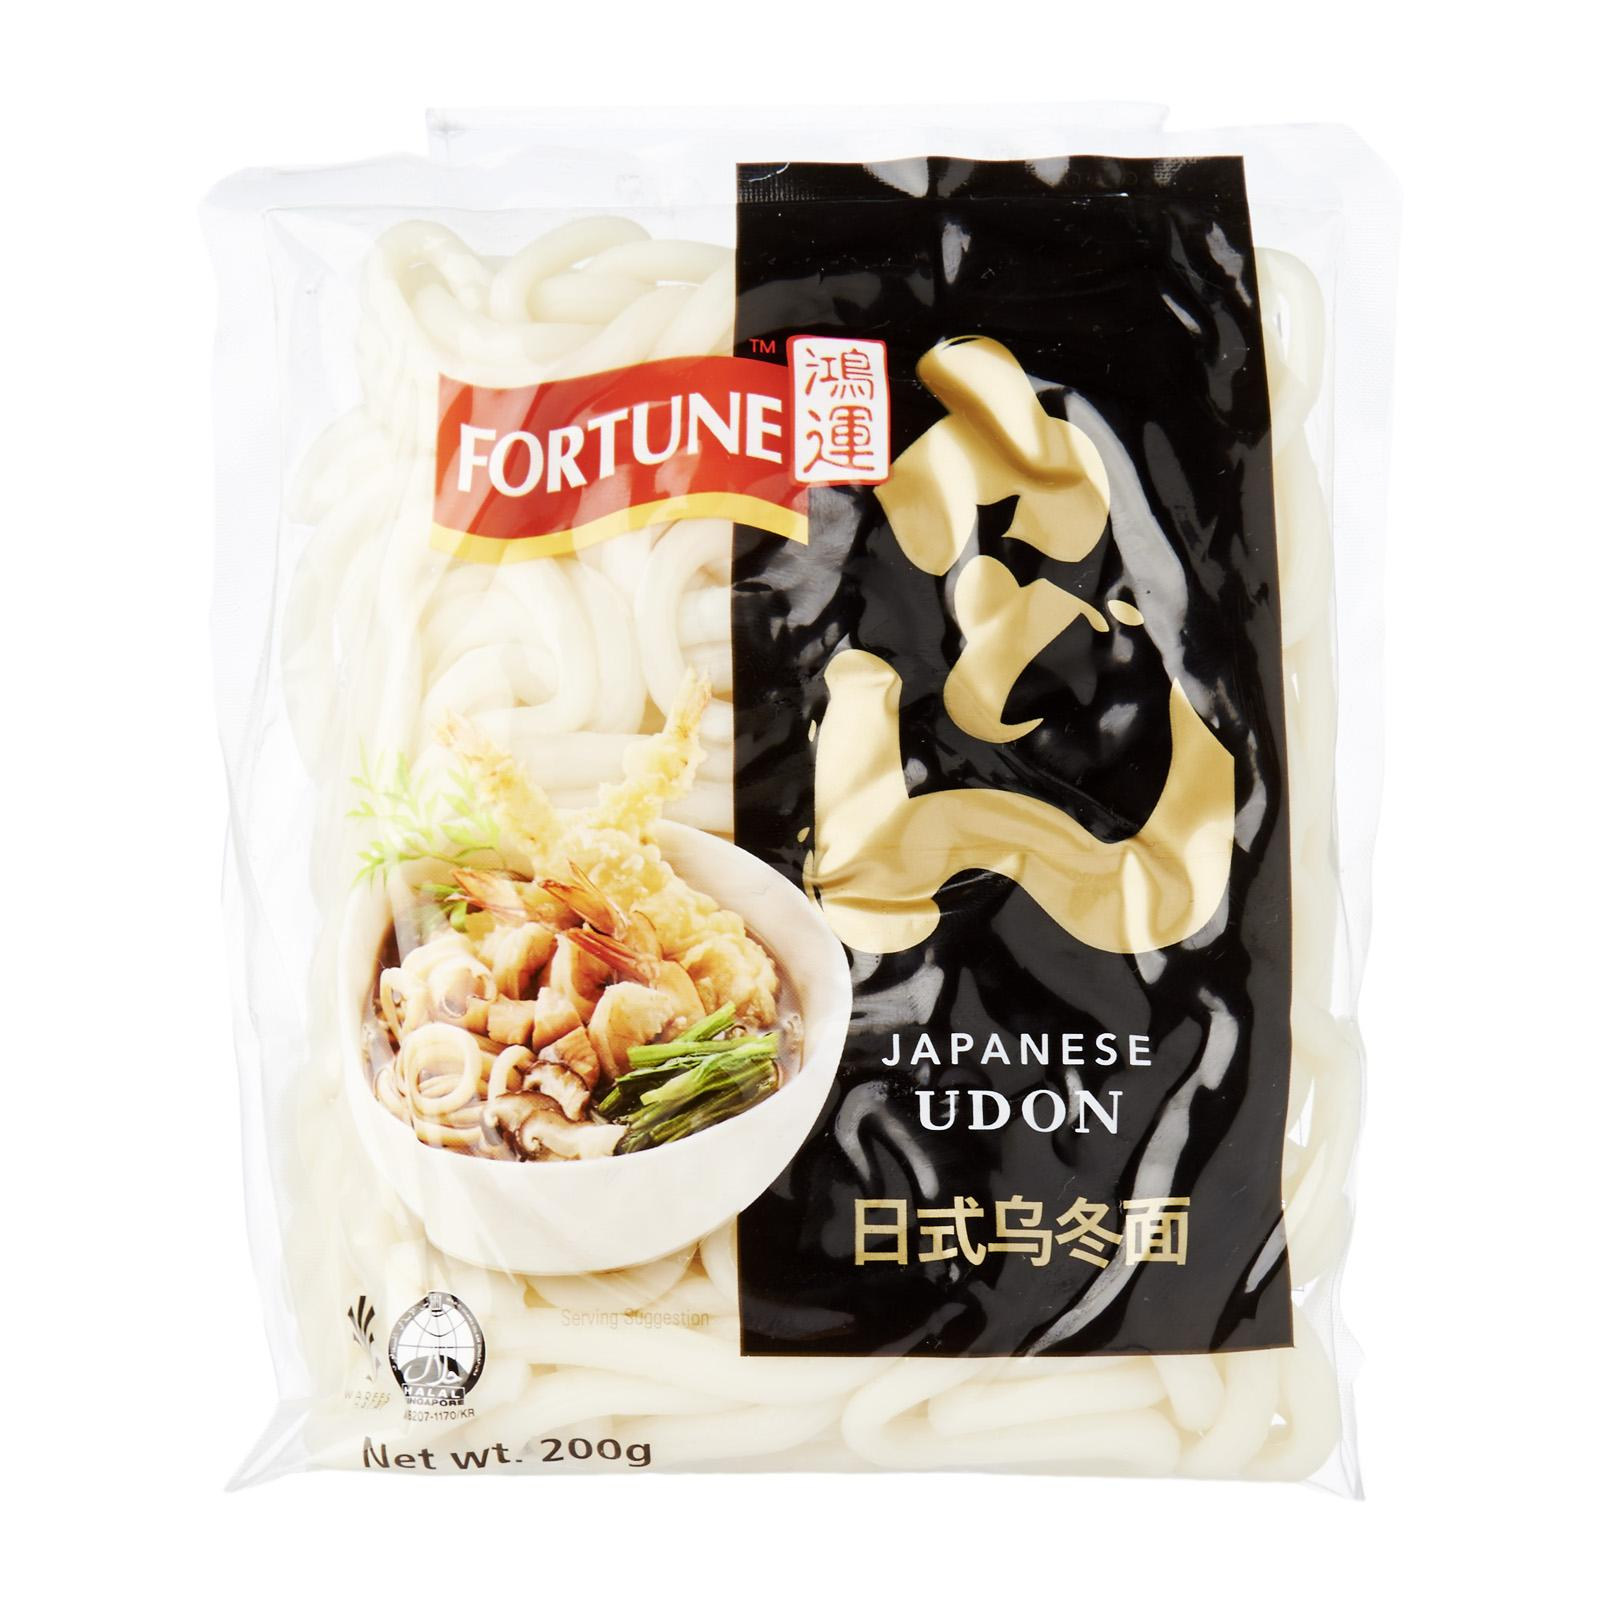 Fortune Japanese Udon By Redmart.